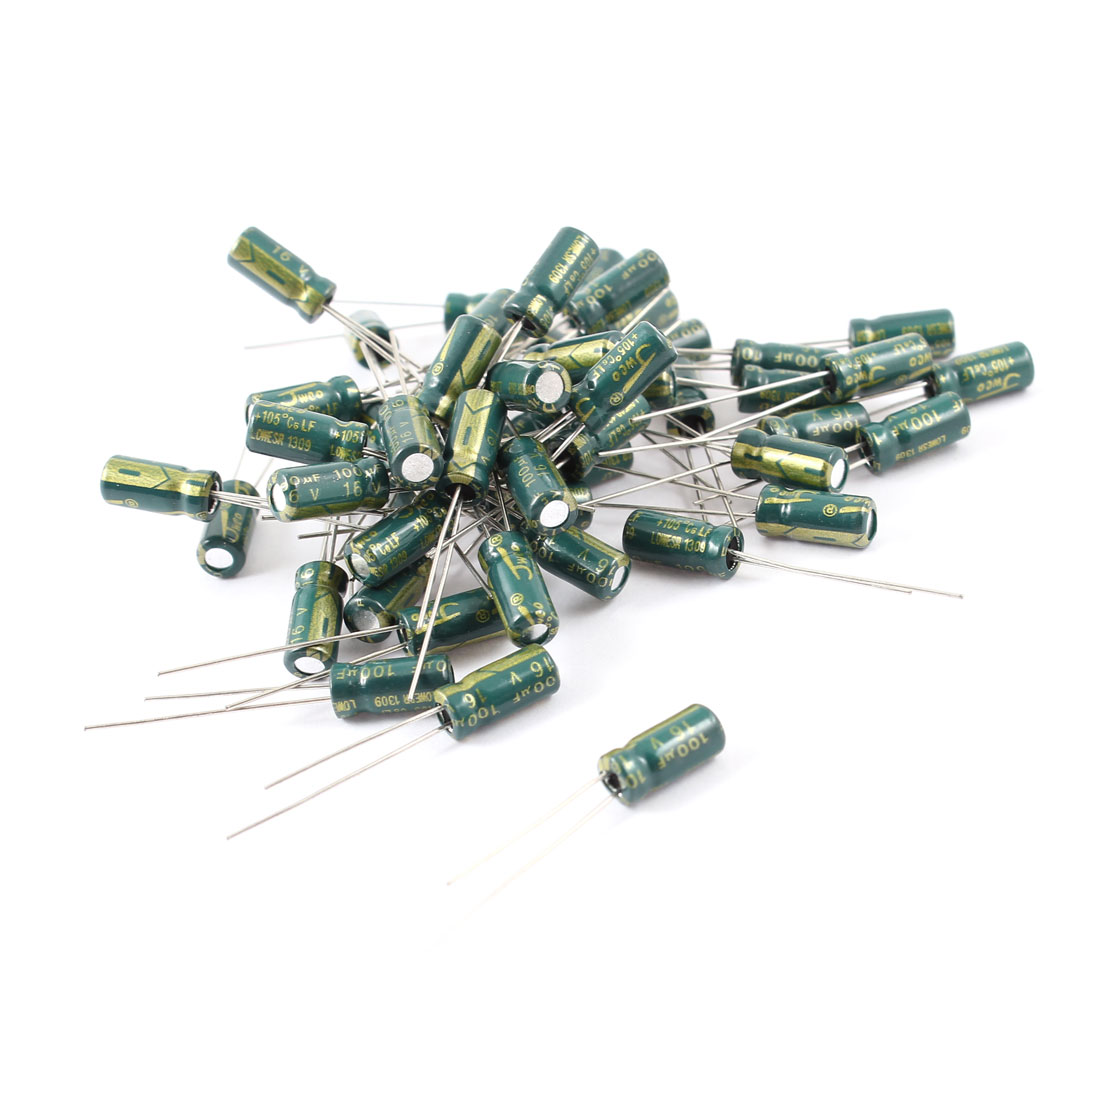 50 Pcs 100uF 16V Radial Motherboard Electrolytic Capacitors 5mmx11mm